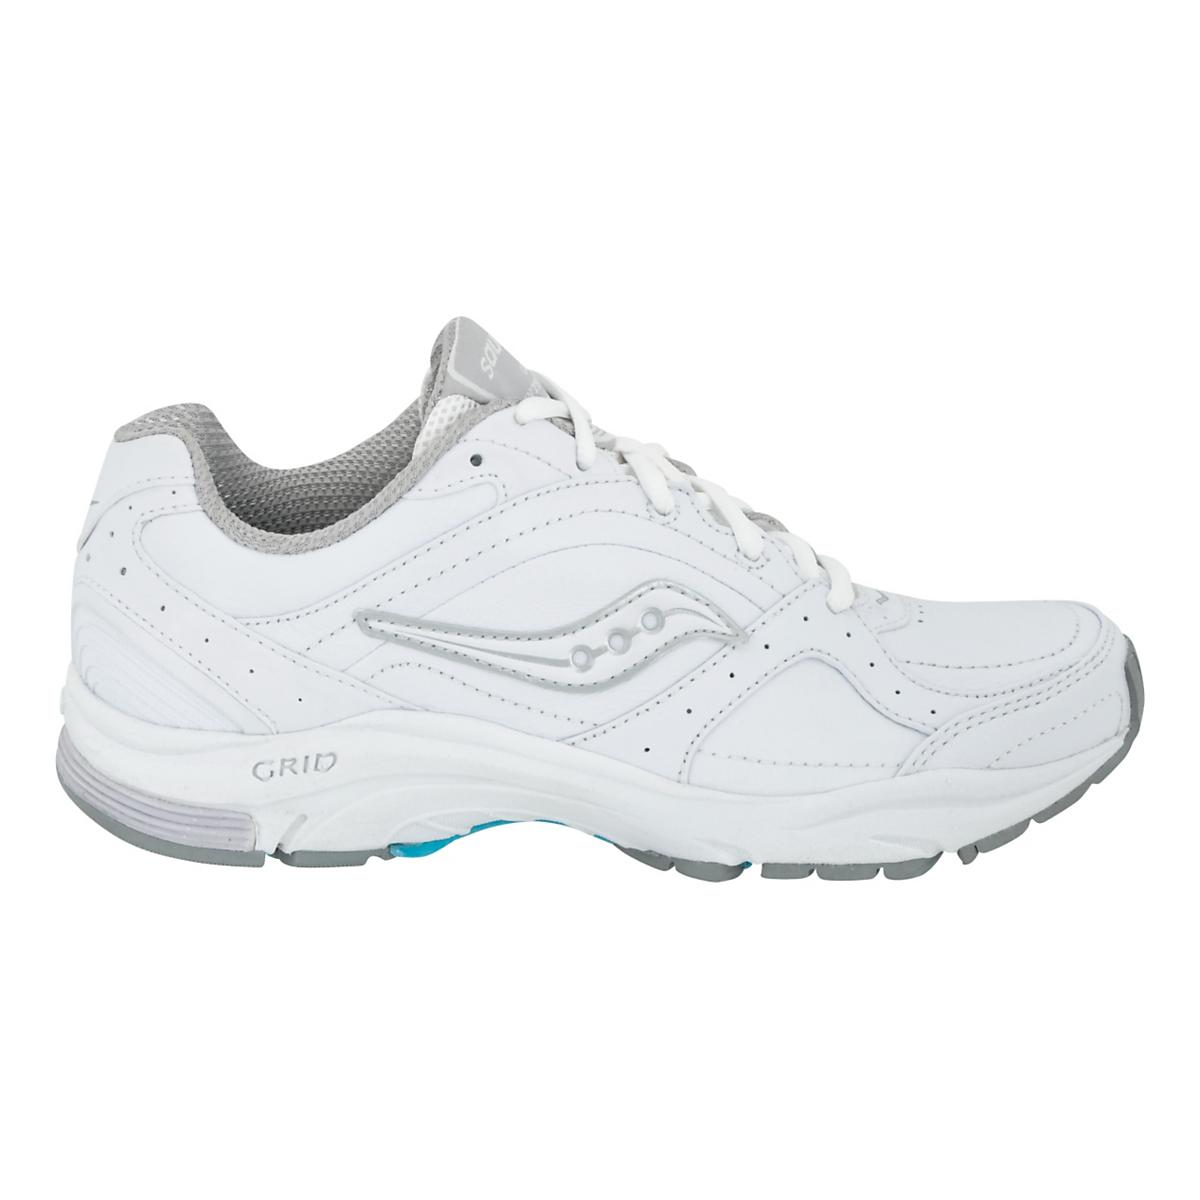 a387c7ba Womens Saucony Grid Integrity ST2 Walking Shoe at Road Runner Sports